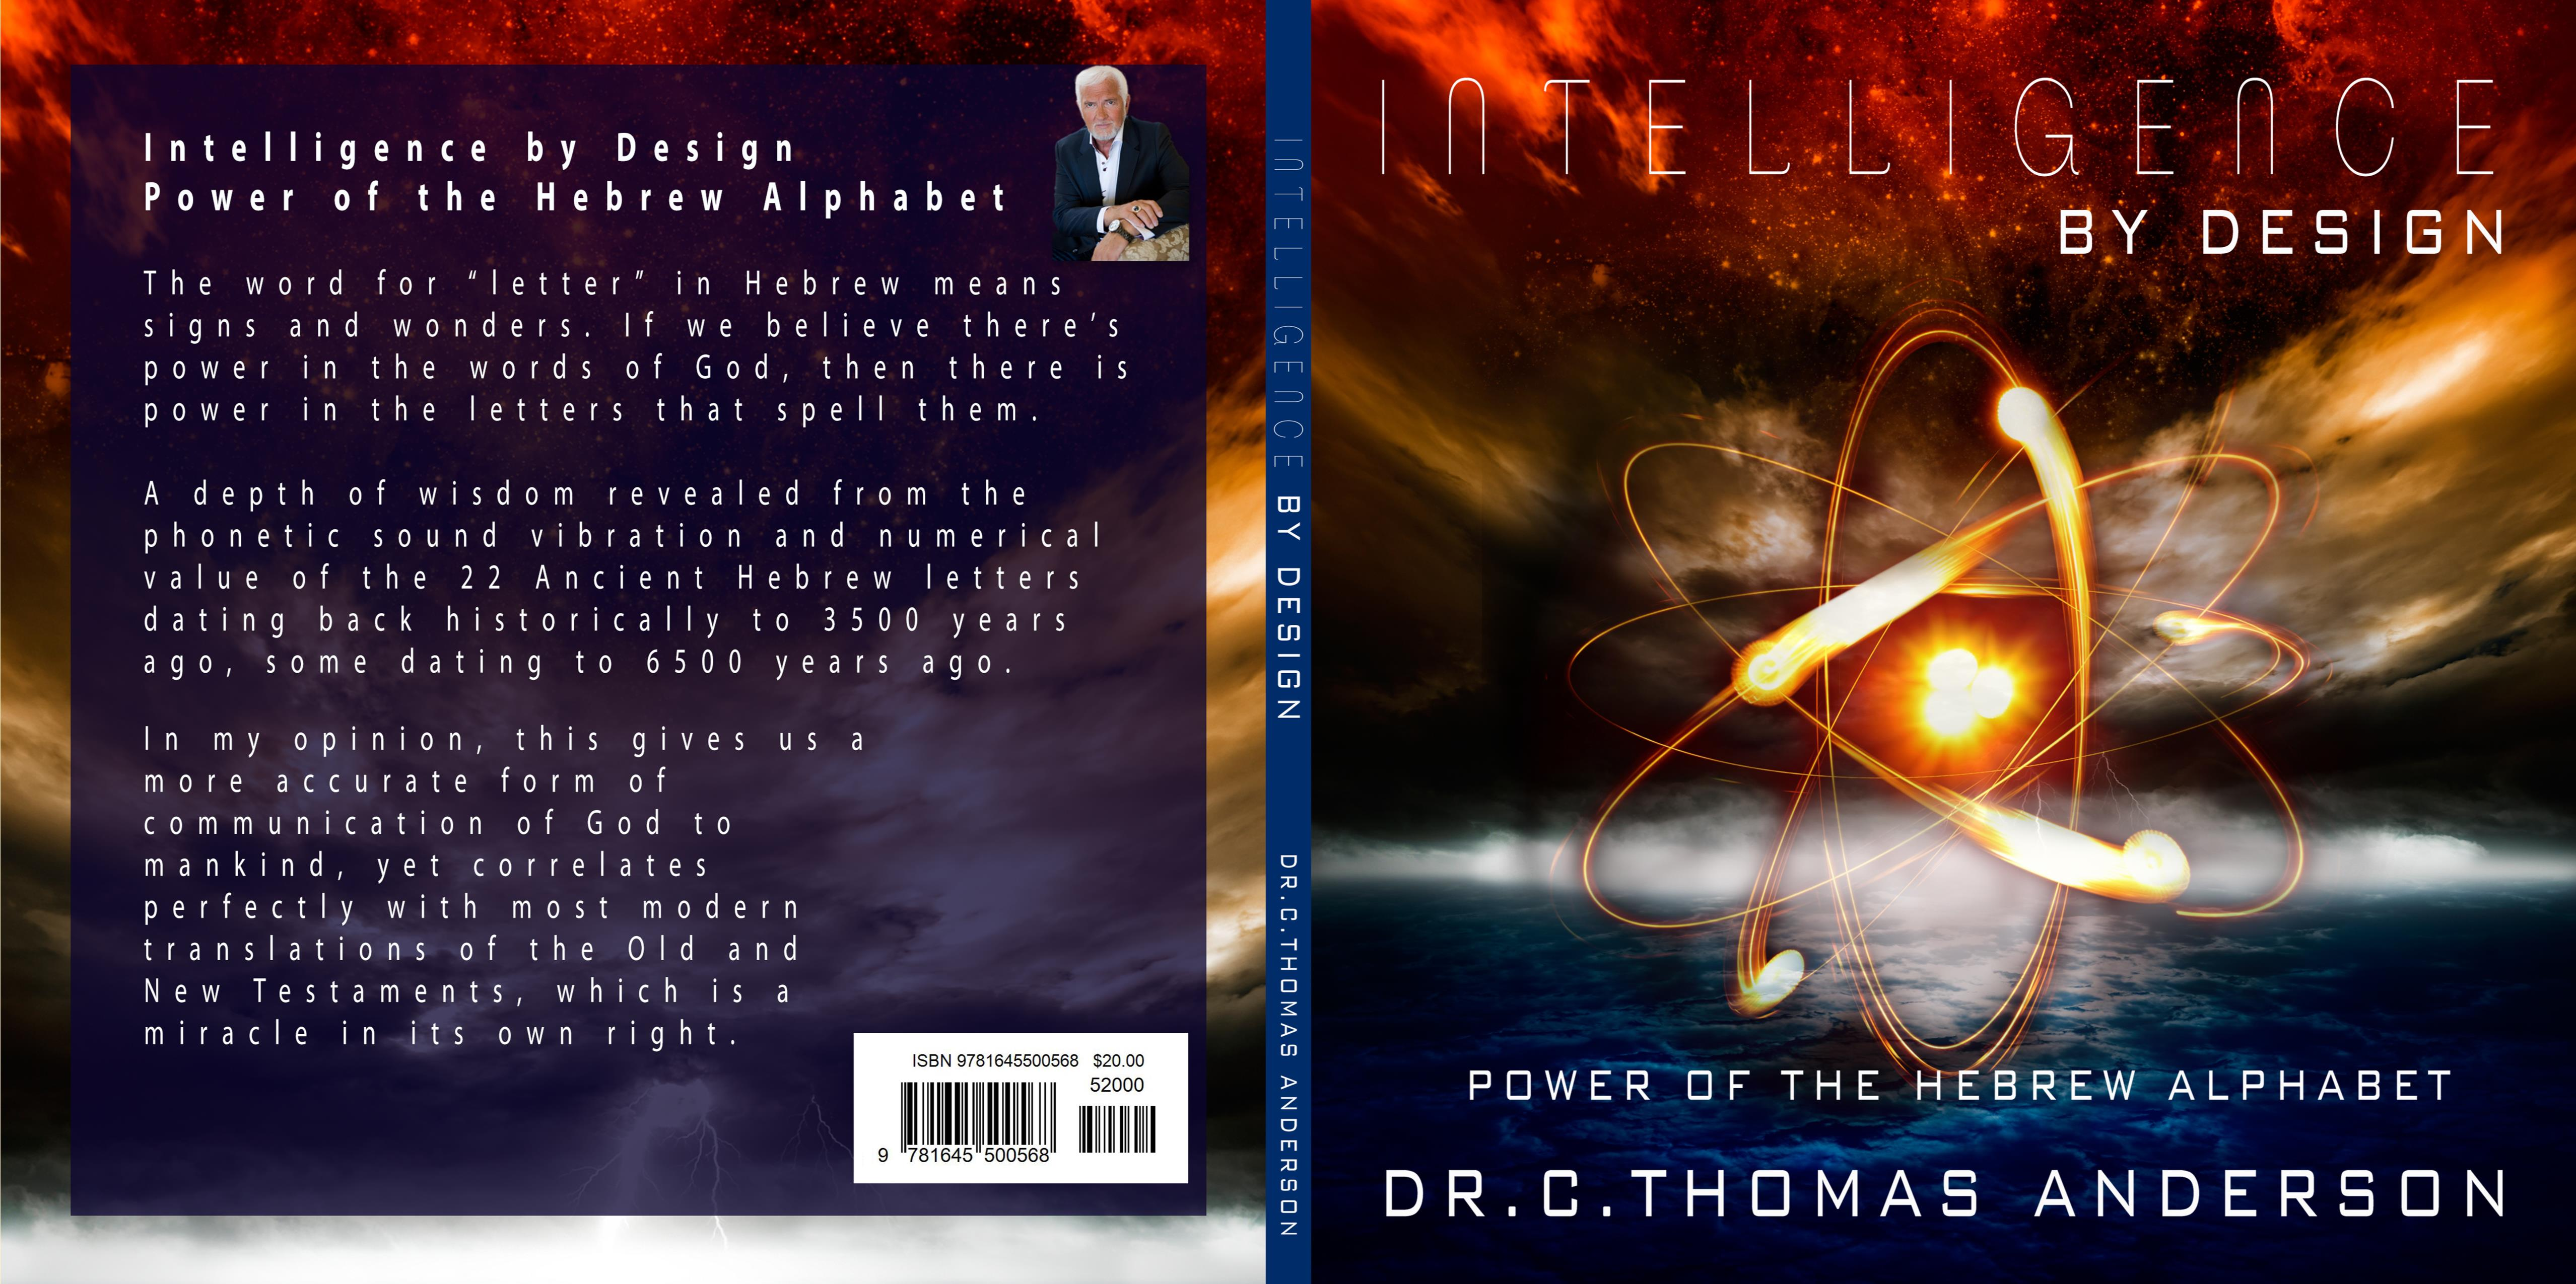 Intelligence By Design cover image